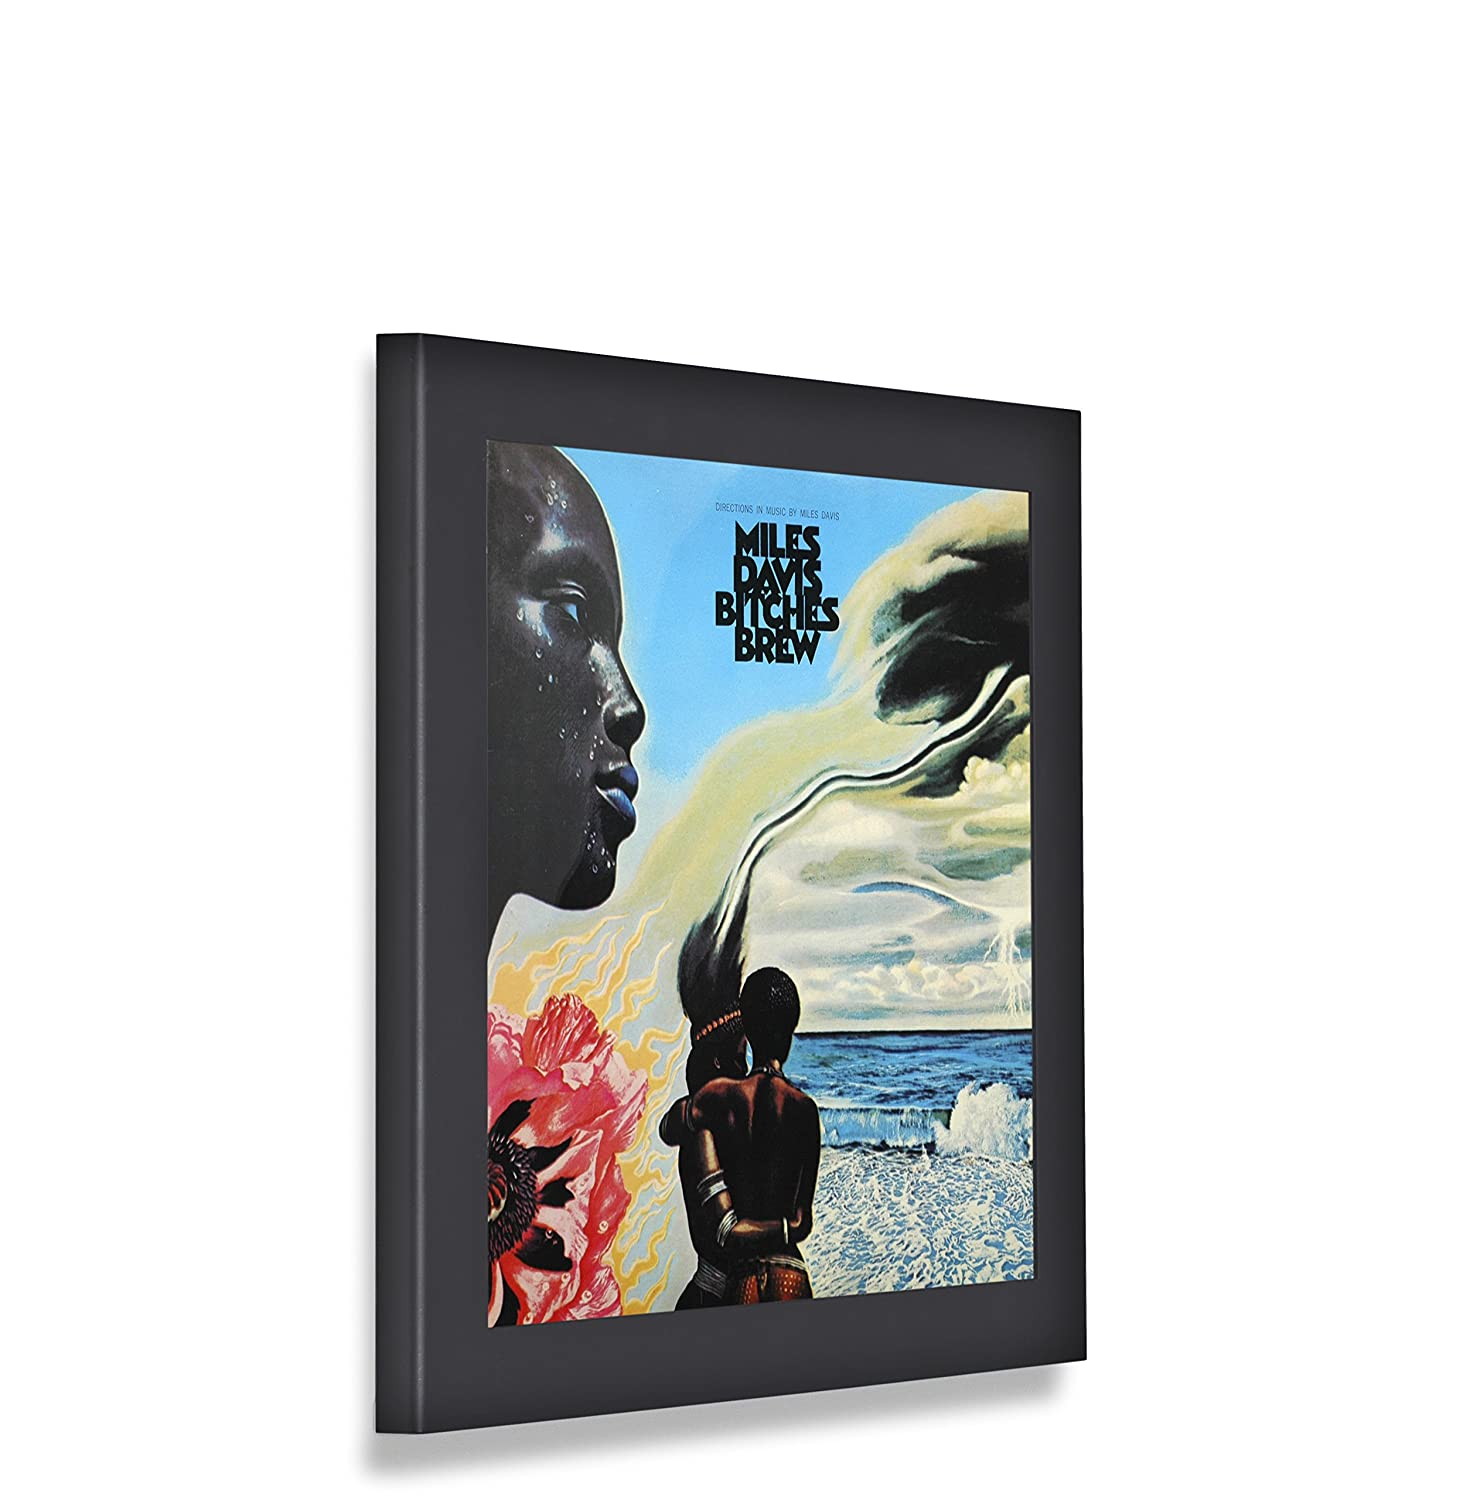 Amazon.com: Art Vinyl Show & Listen Album Cover Display Frame, Flip ...